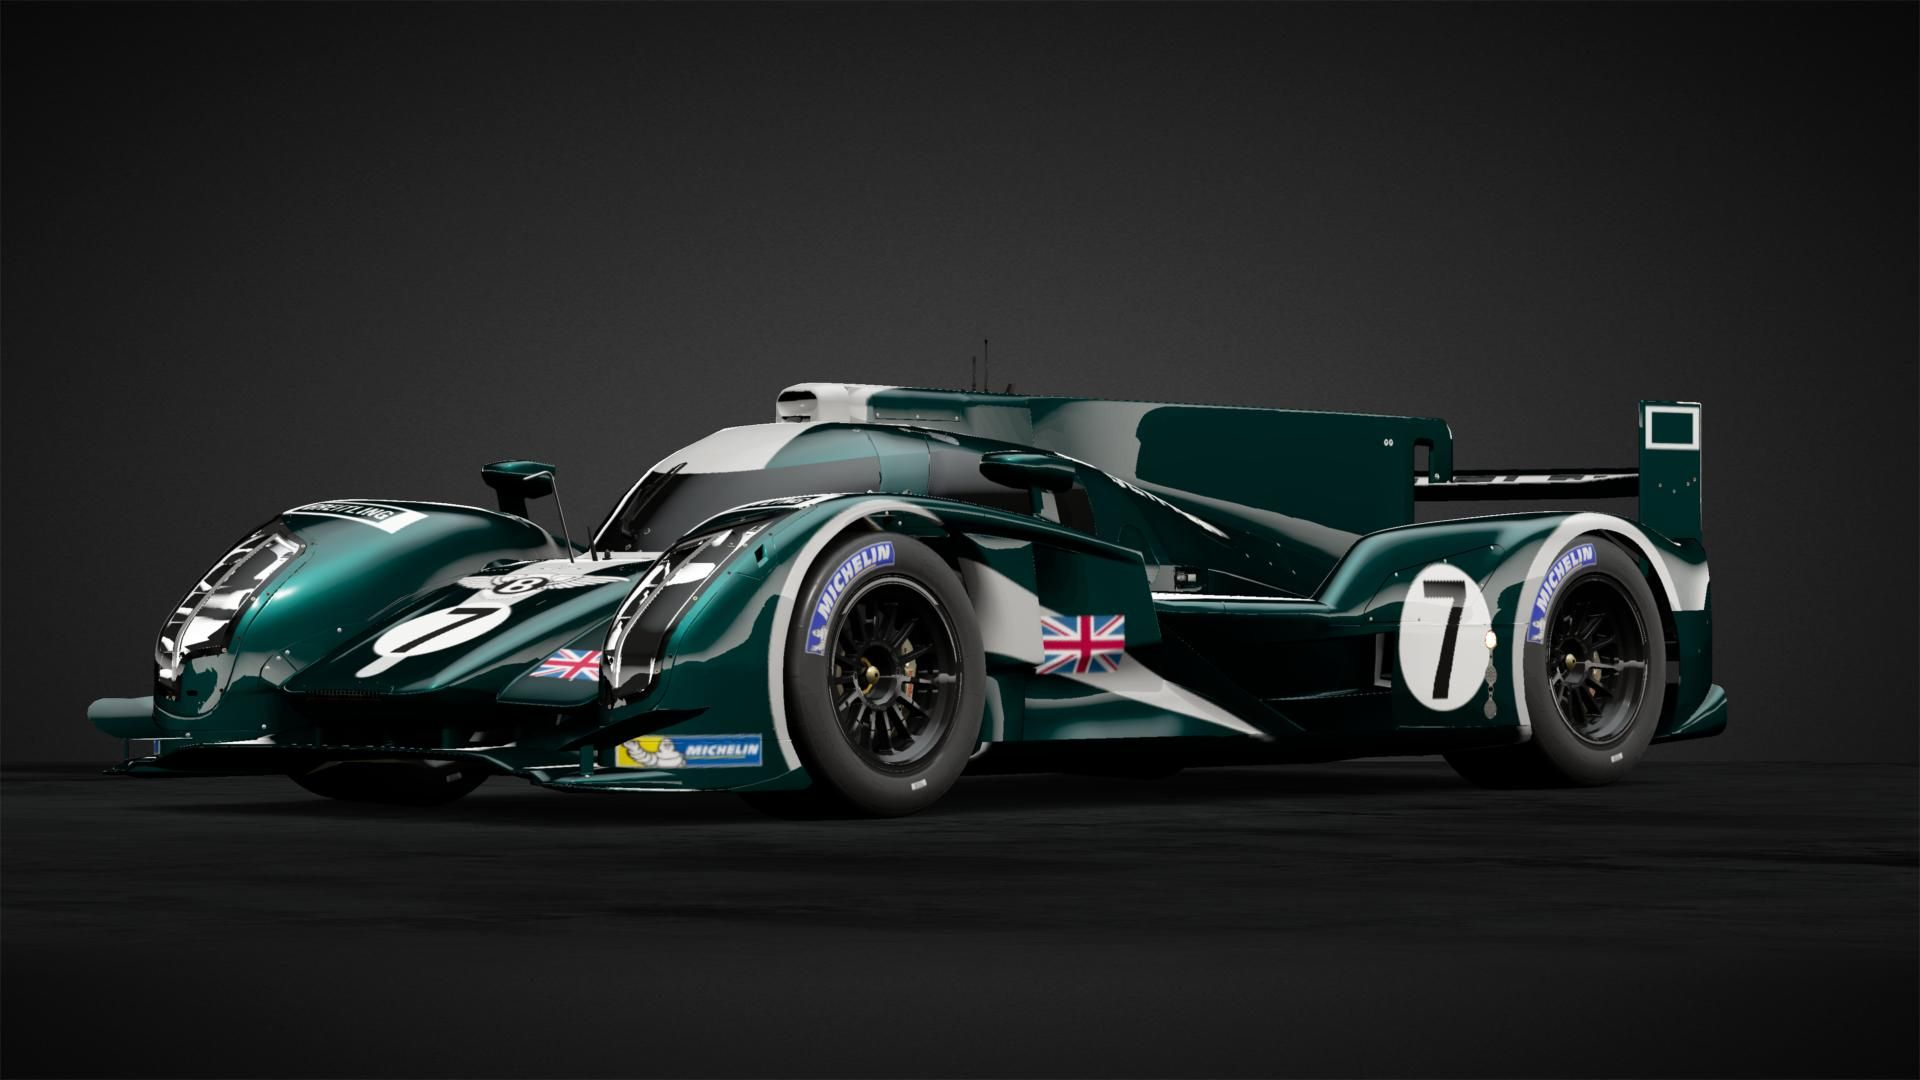 Bentley Speed 8 Race Car Car Livery by rogholmesPNE1880